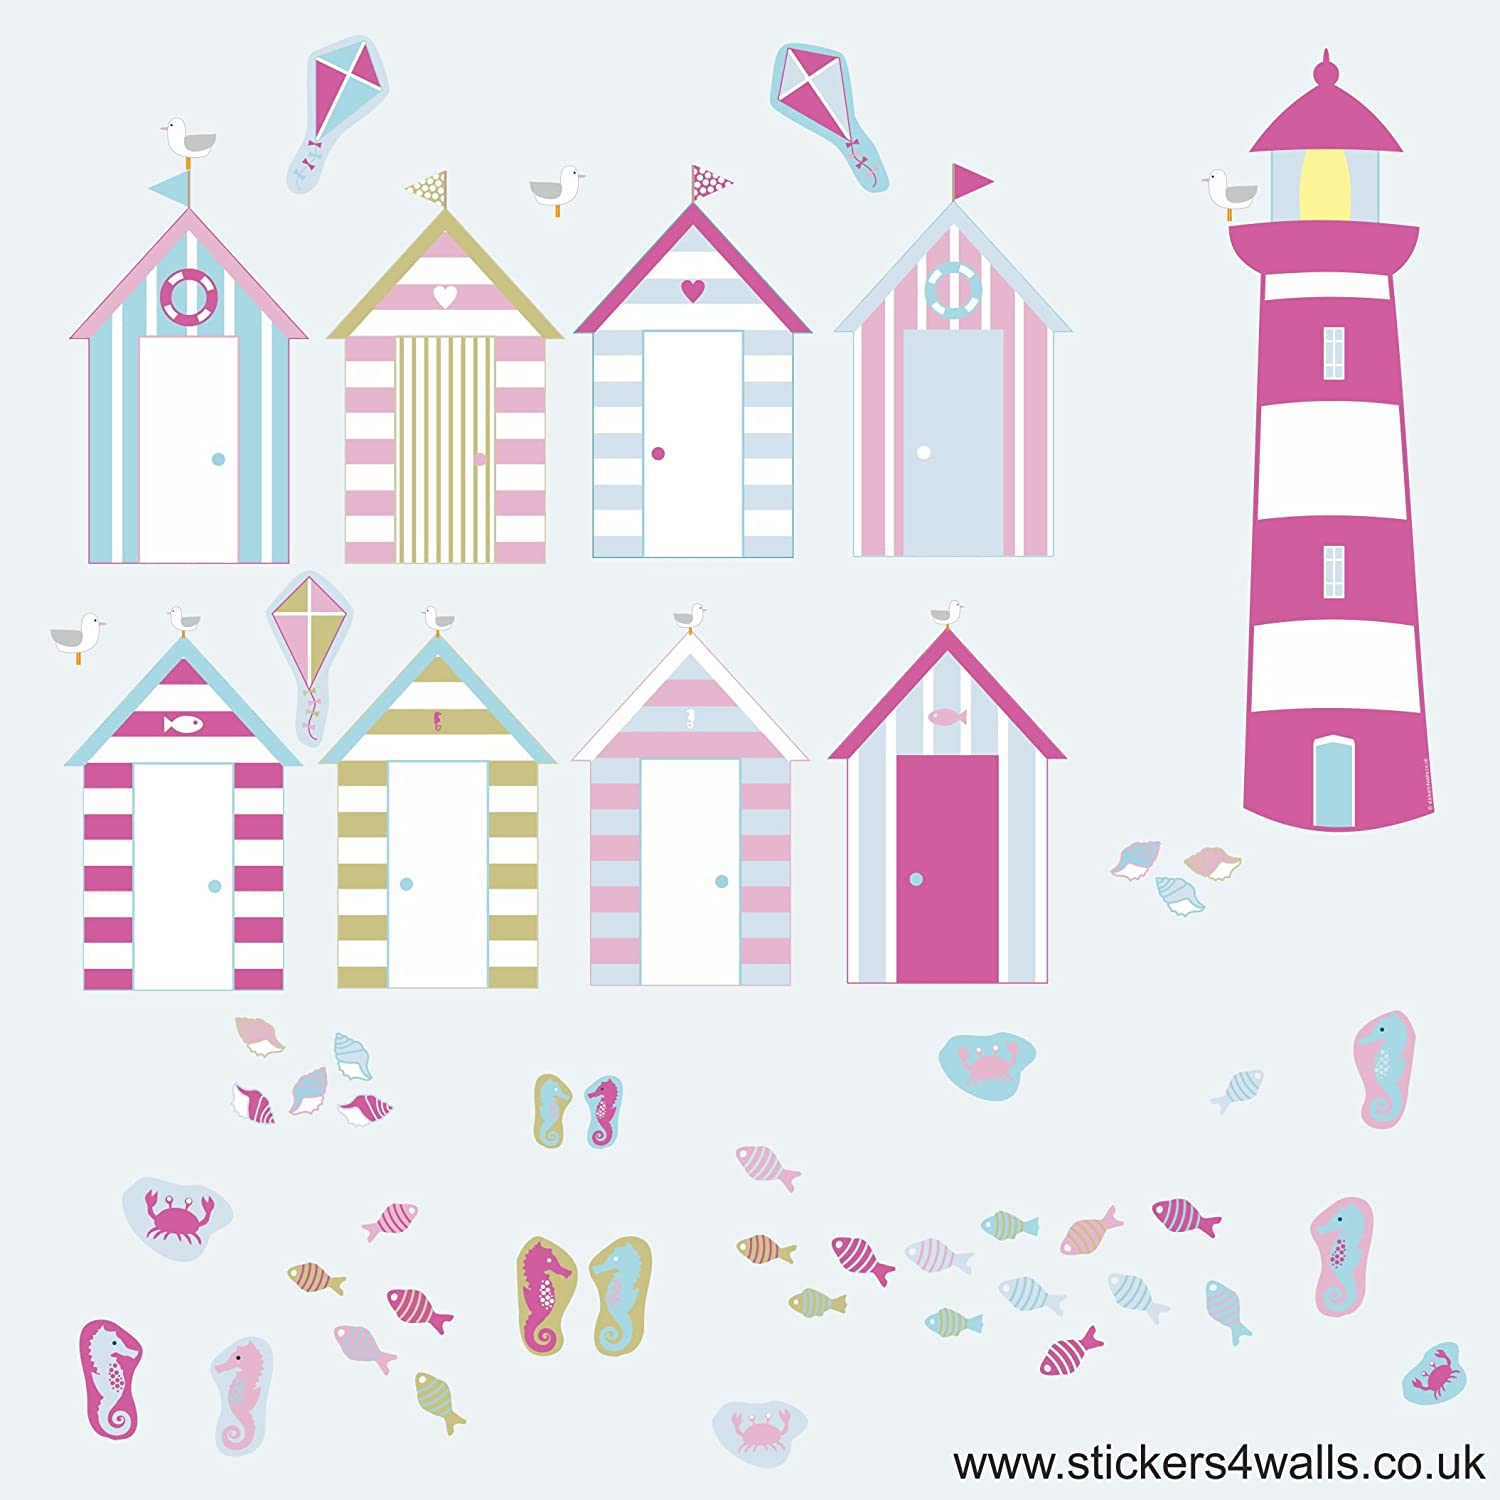 BEACH HUT WALL STICKERS SEASIDE PINK Beach Hut Wall Decals Seaside